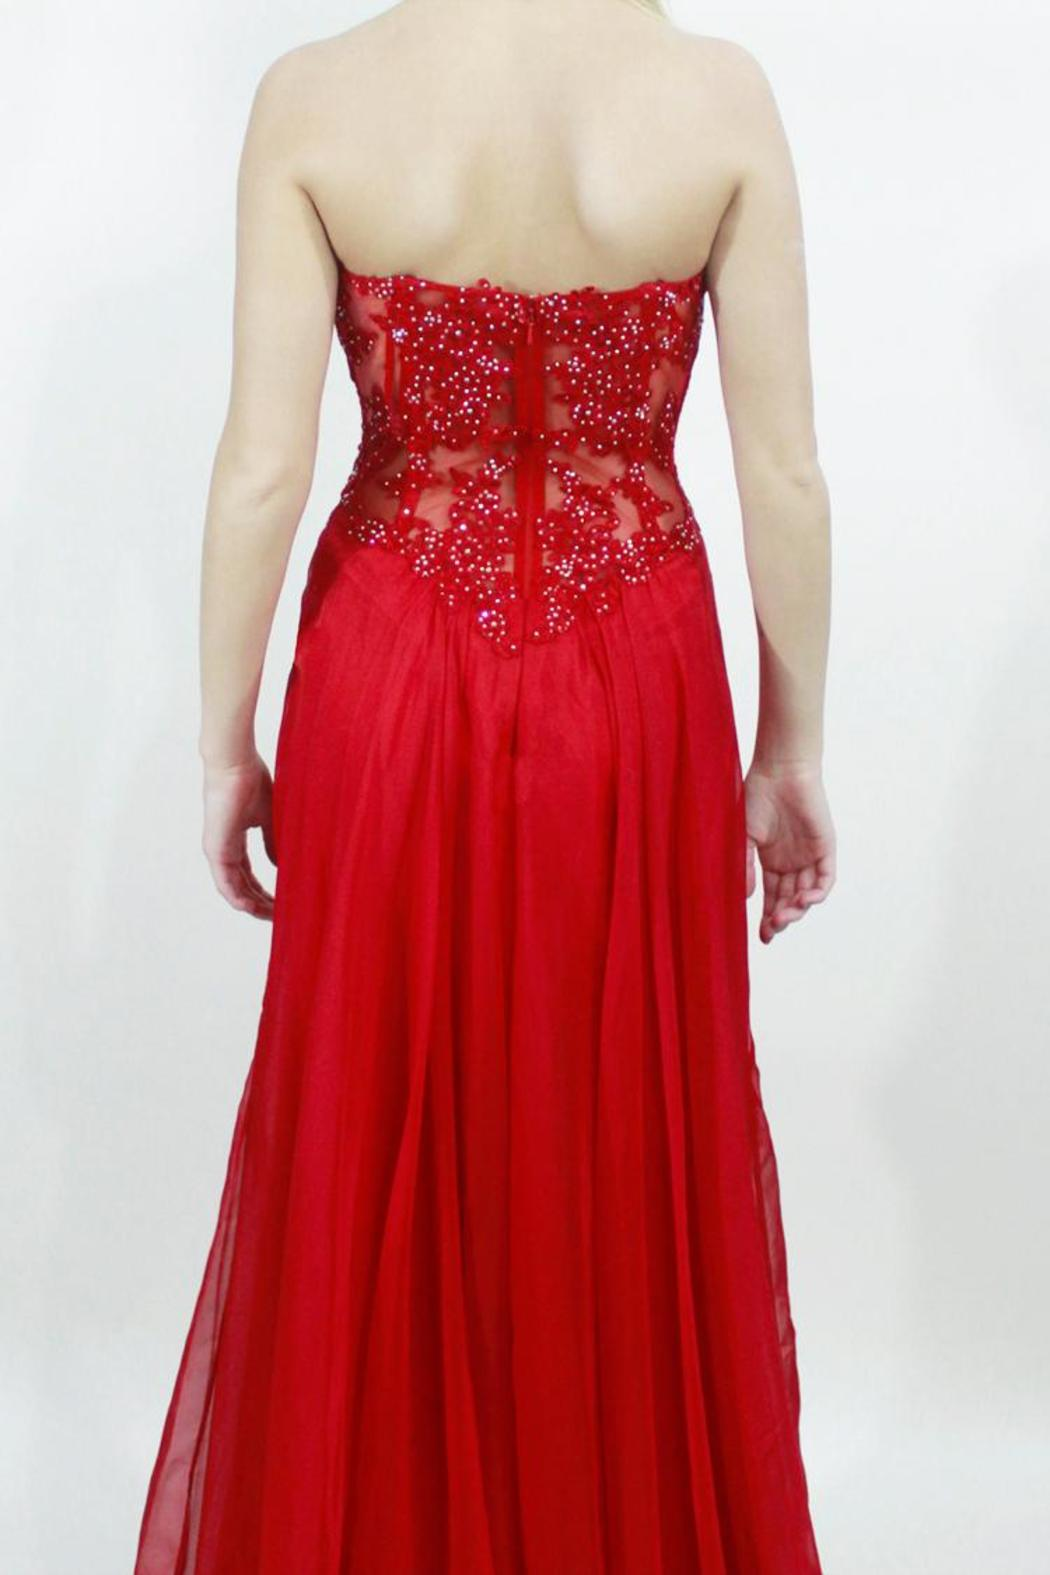 Apricot Lane St Cloud Strapless Red Dress From Minnesota